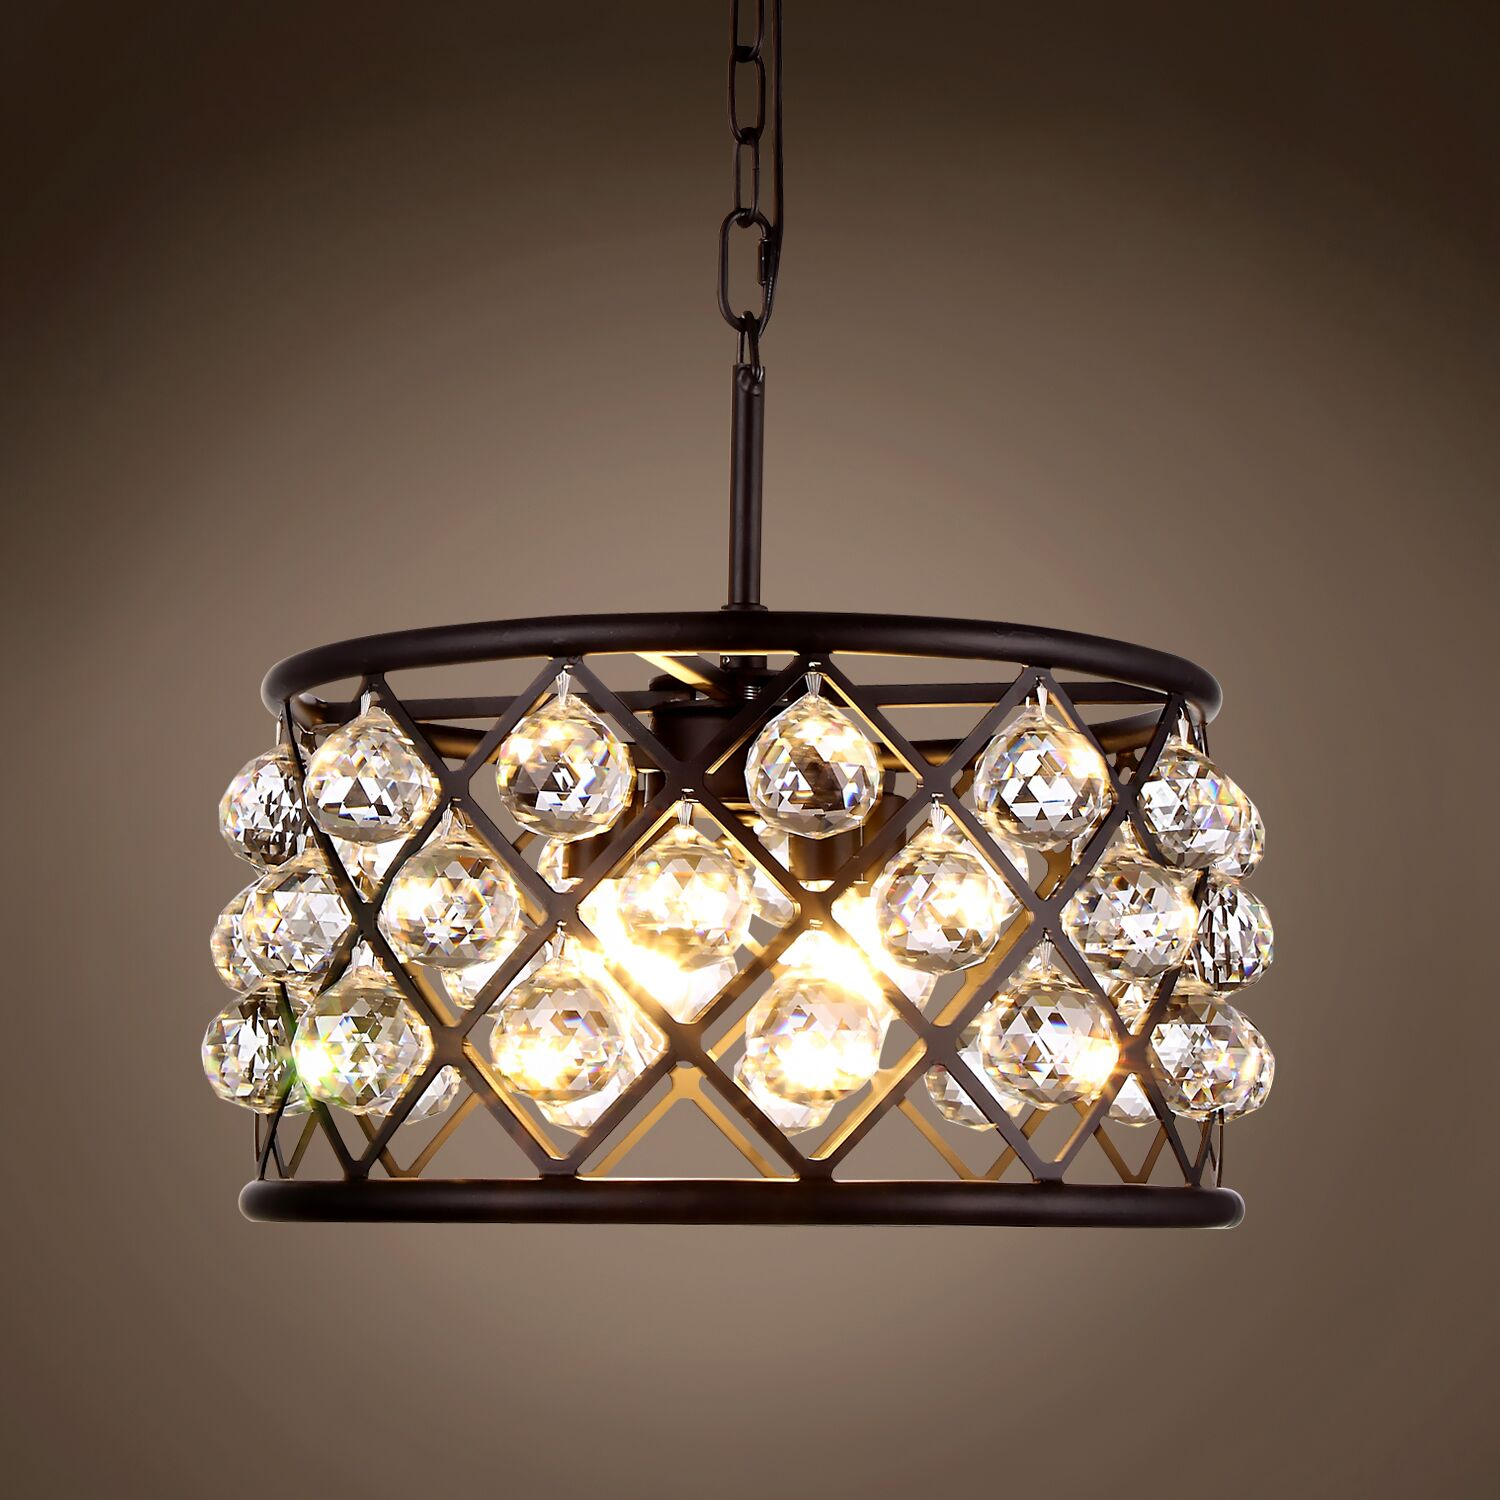 Lulsgate 4-Light Chandelier Shade Color: Clear, Finish: Gray, Bulb Type: LED